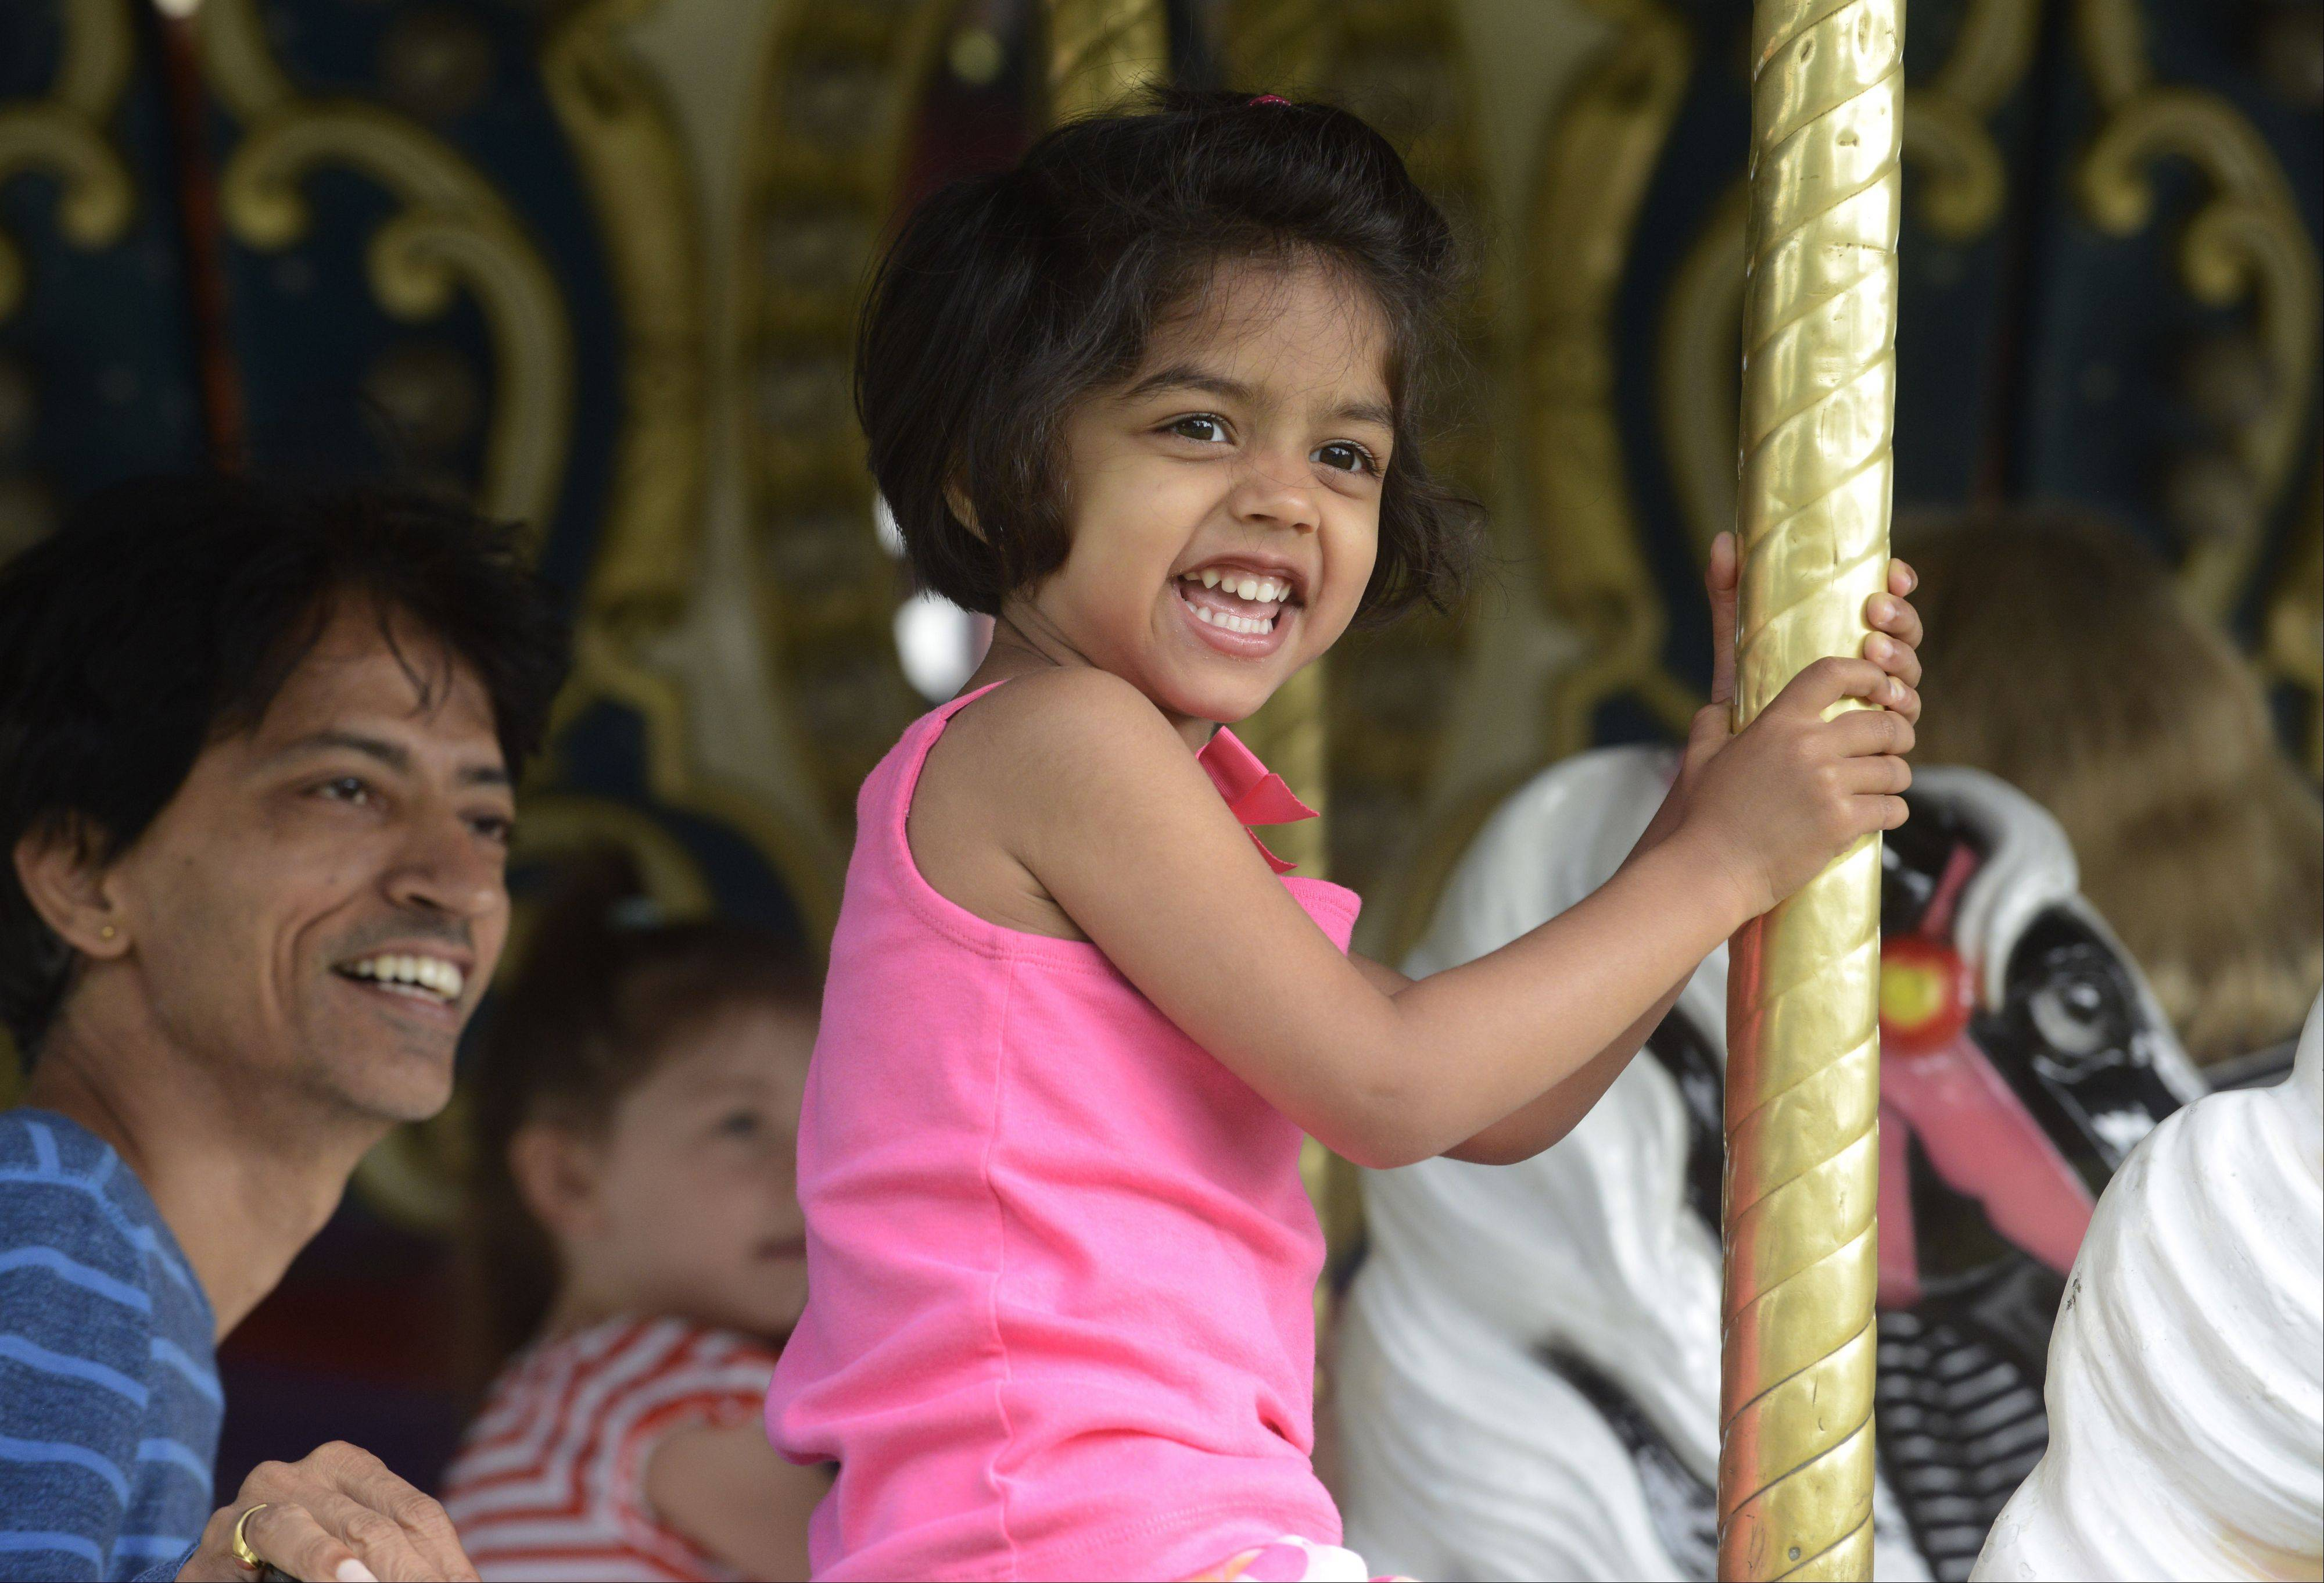 Dhira Ayyagari, 3, of Arlington Heights rides the carousel with her dad, Narsu, during Frontier Days in Arlington Heights Wednesday.